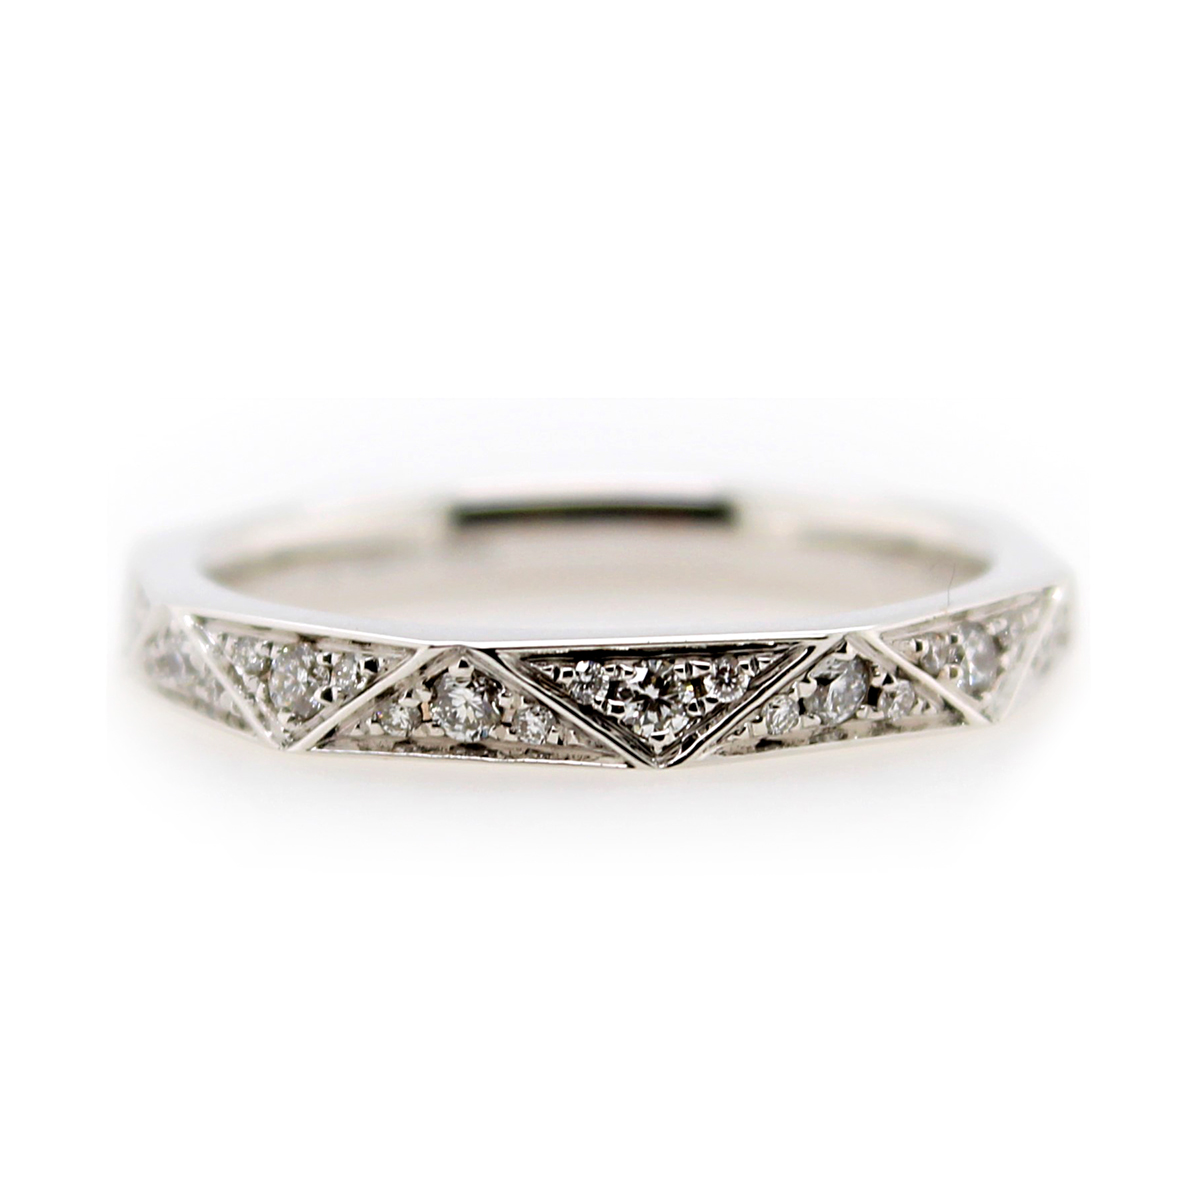 Henri Daussi 14 Karat White Gold Diamond Prismatic Wedding Band